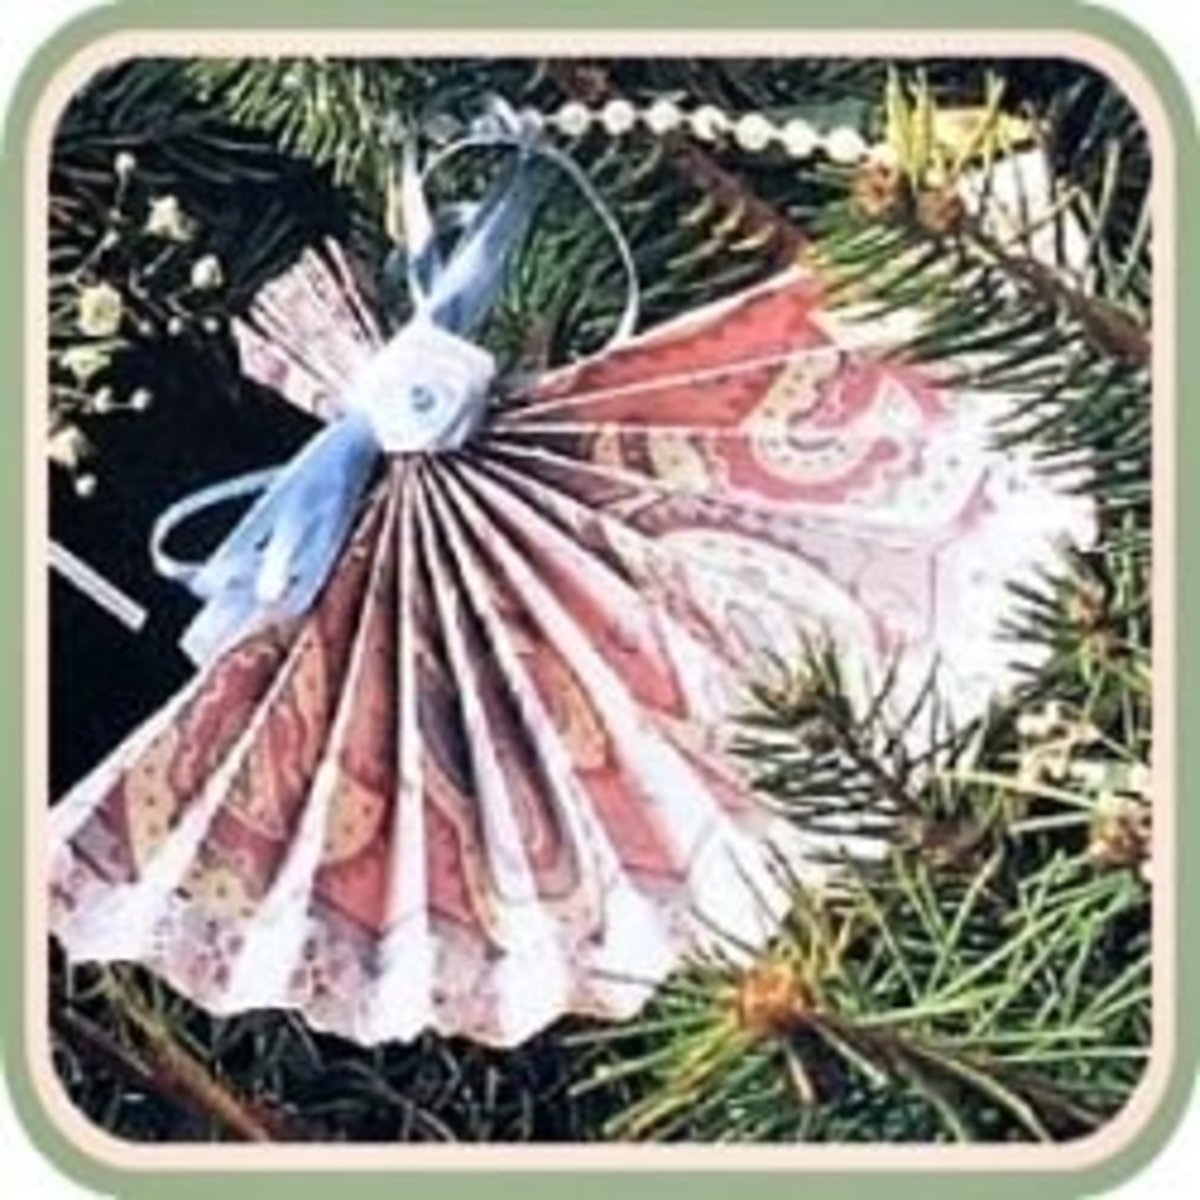 Christmas Decorations In Victorian England: How To Make Victorian-Style Lace Christmas Ornaments